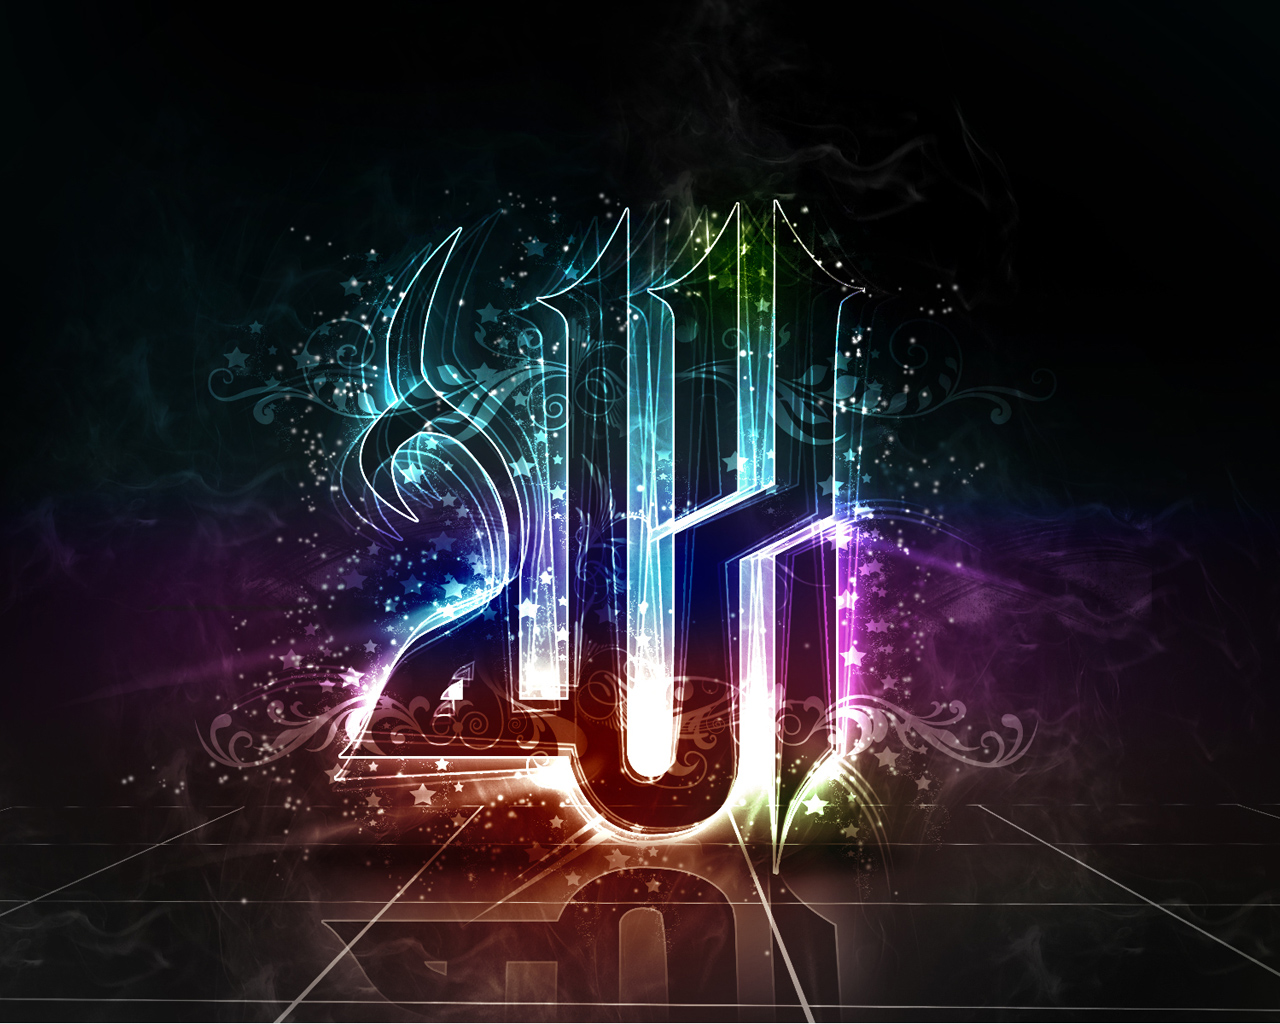 Kaligrafi Allah Wallpaper Kaligrafi Allah Wallpaper